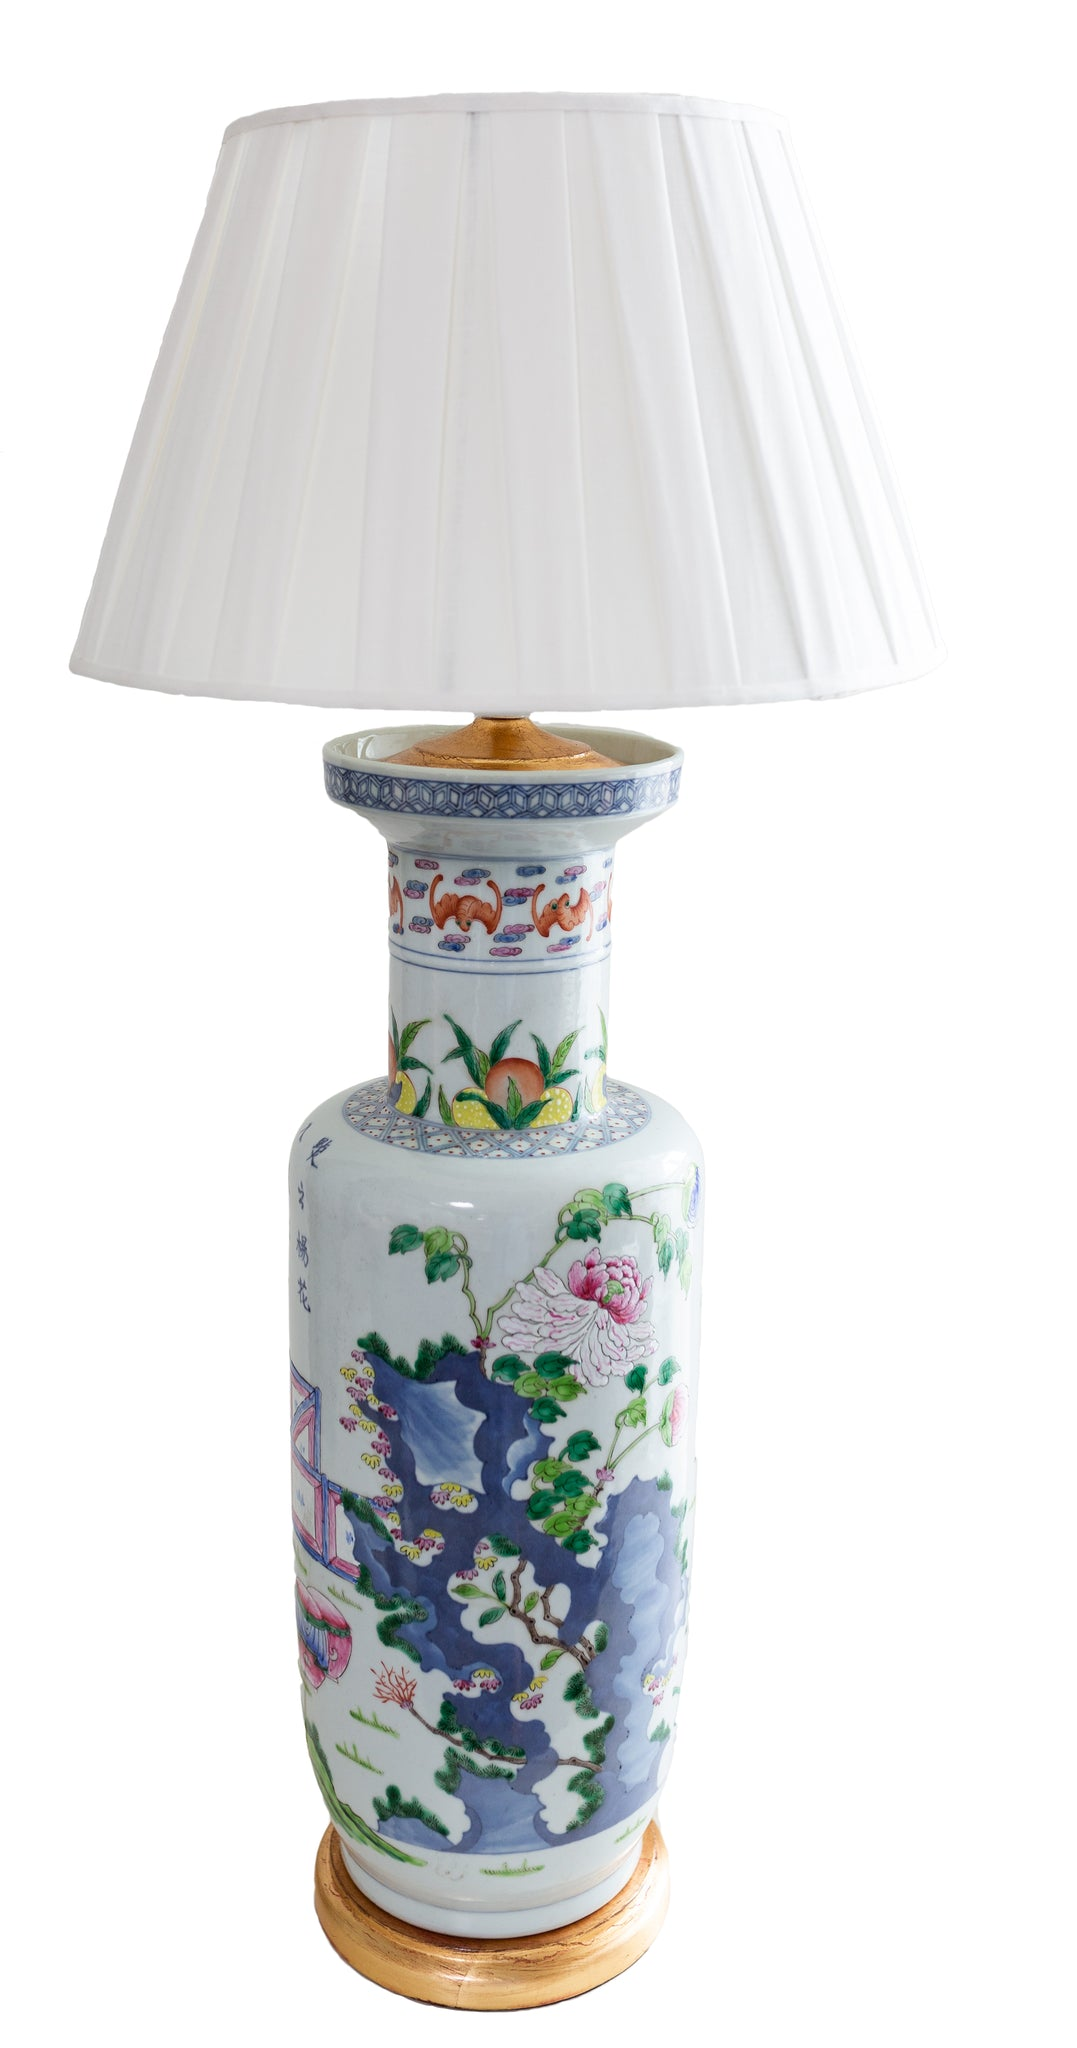 Kangxi Vase Lamp - Amy Berry Home